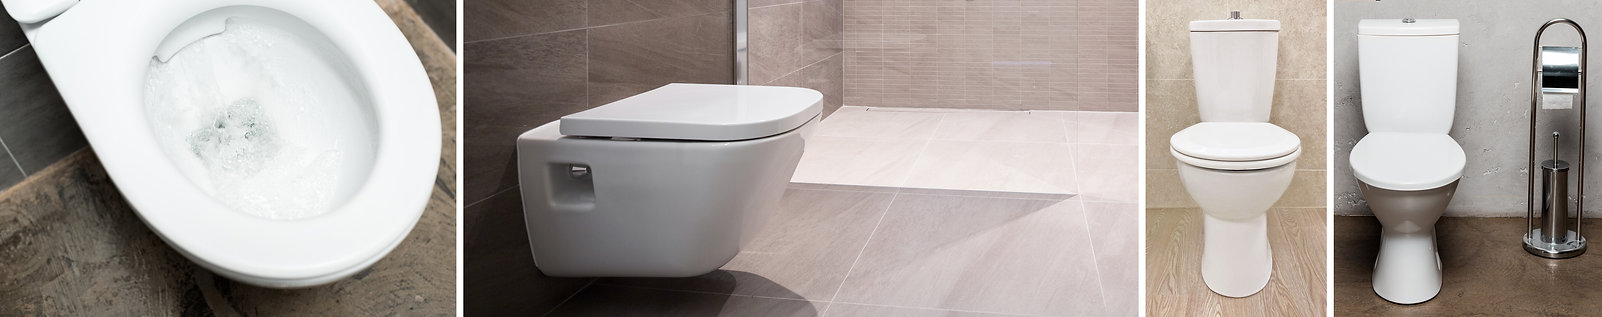 products-wc's-master4650x920.jpg